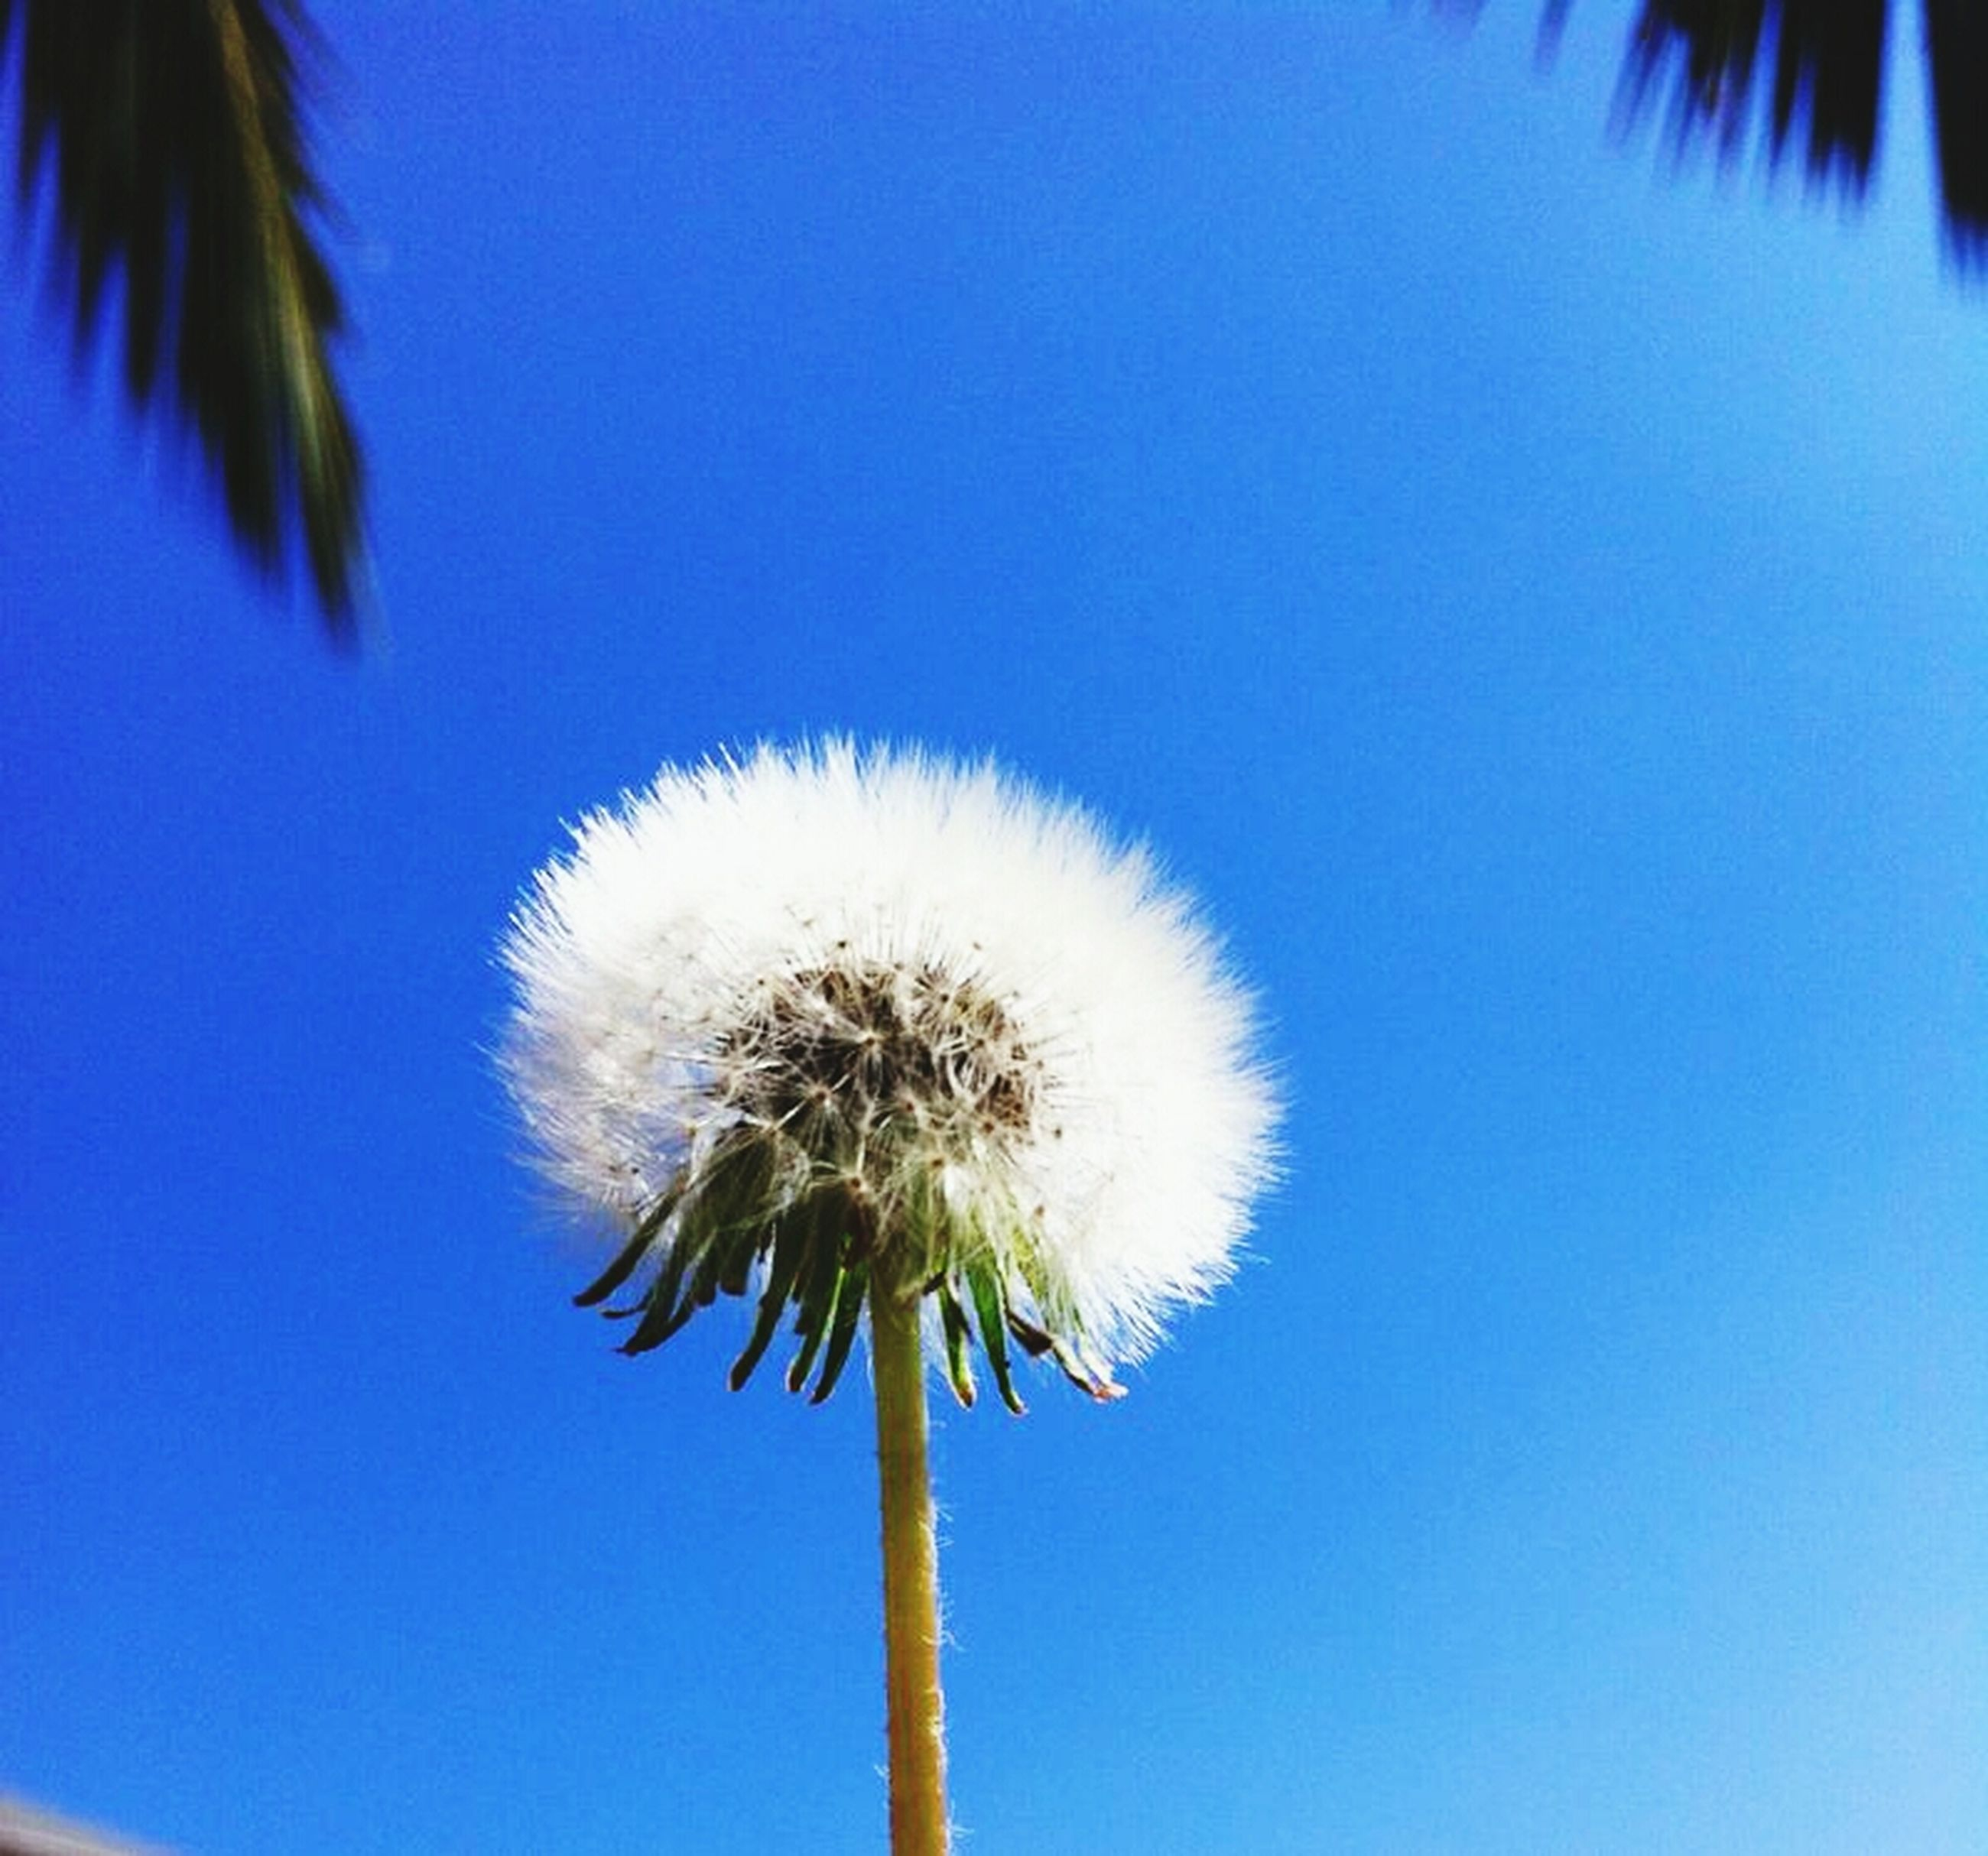 dandelion, flower, low angle view, fragility, flower head, growth, clear sky, blue, single flower, beauty in nature, stem, nature, freshness, palm tree, close-up, softness, dandelion seed, sky, no people, uncultivated